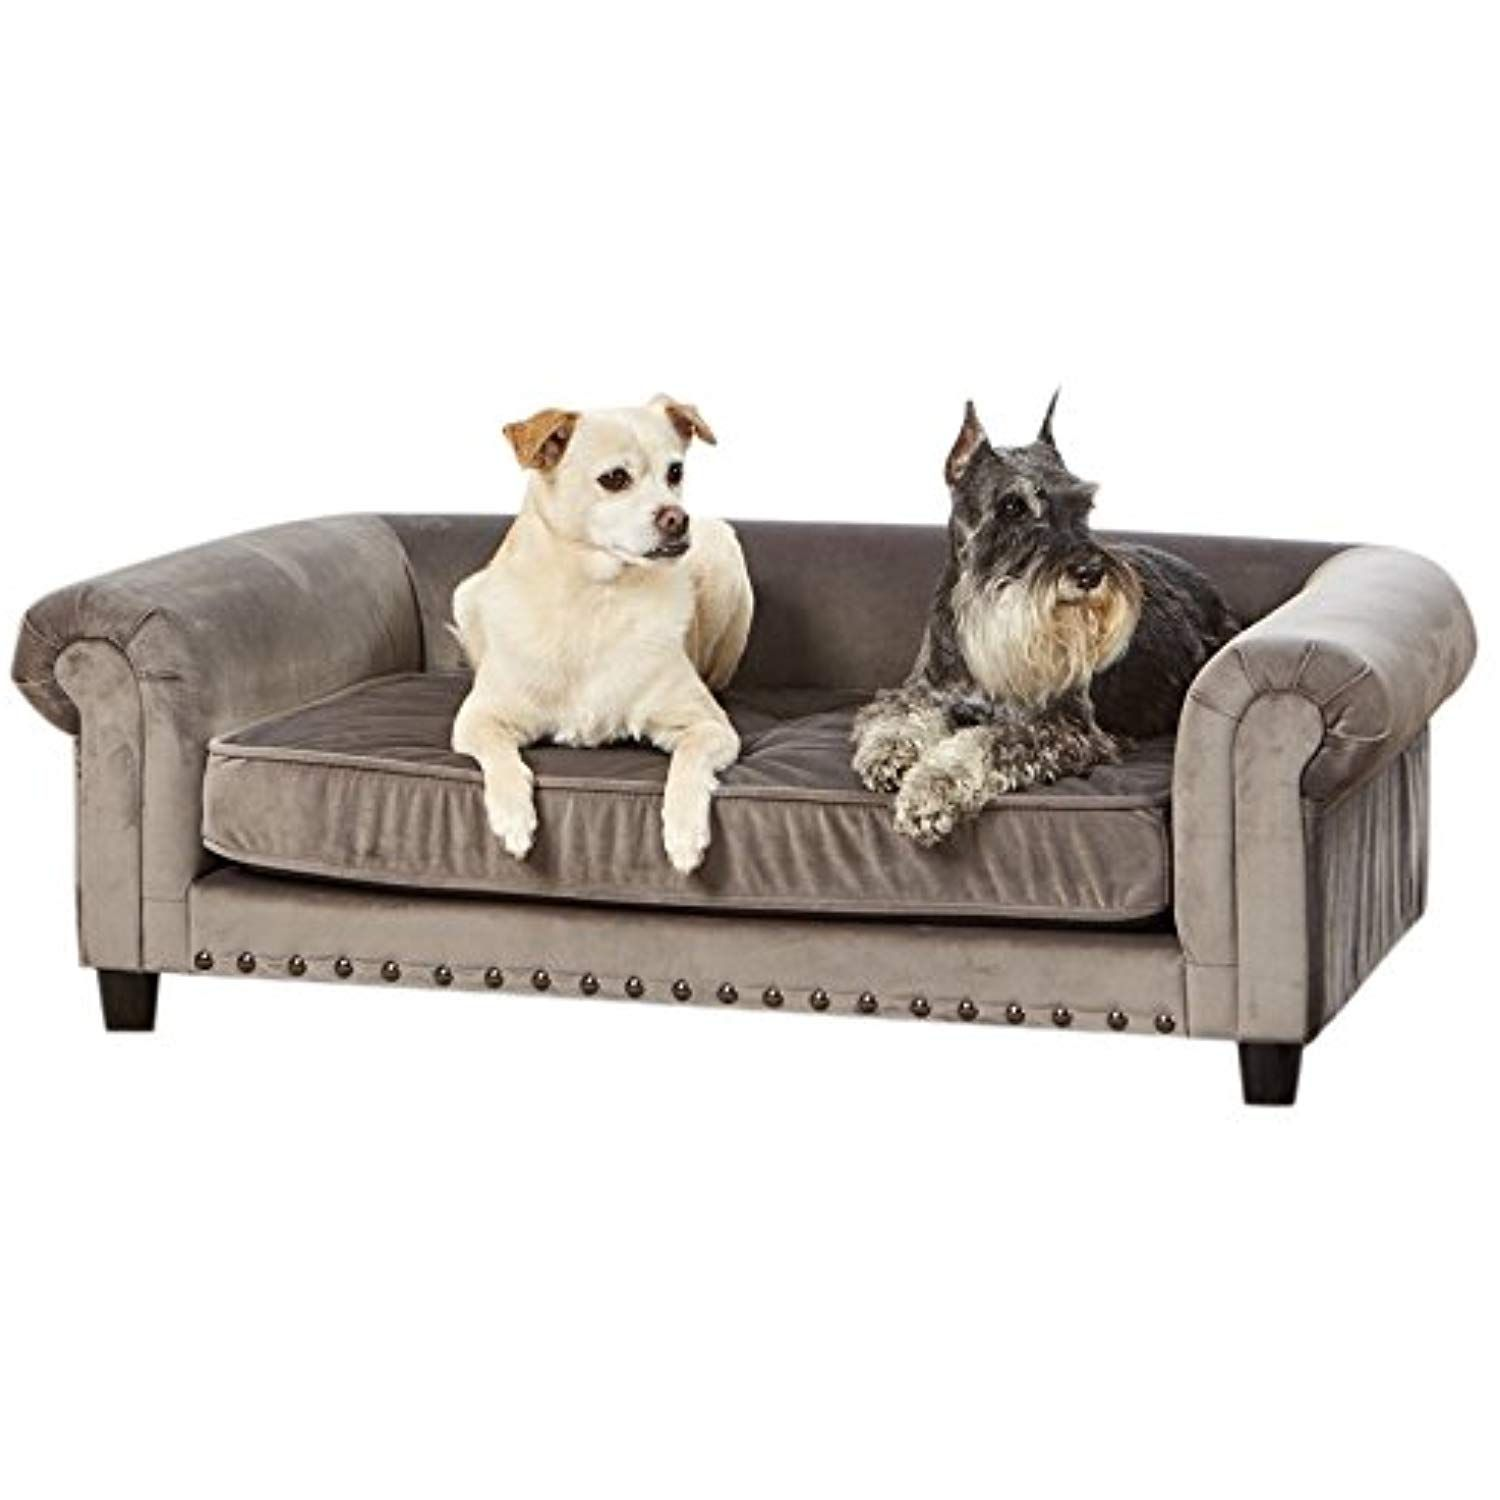 Enchanted Home Pet Co2786 16gry Manchester Velvet Tufted Pet Sofa In Grey Want To Know More Click On The Image Enchanted Home Cat Bed Furniture